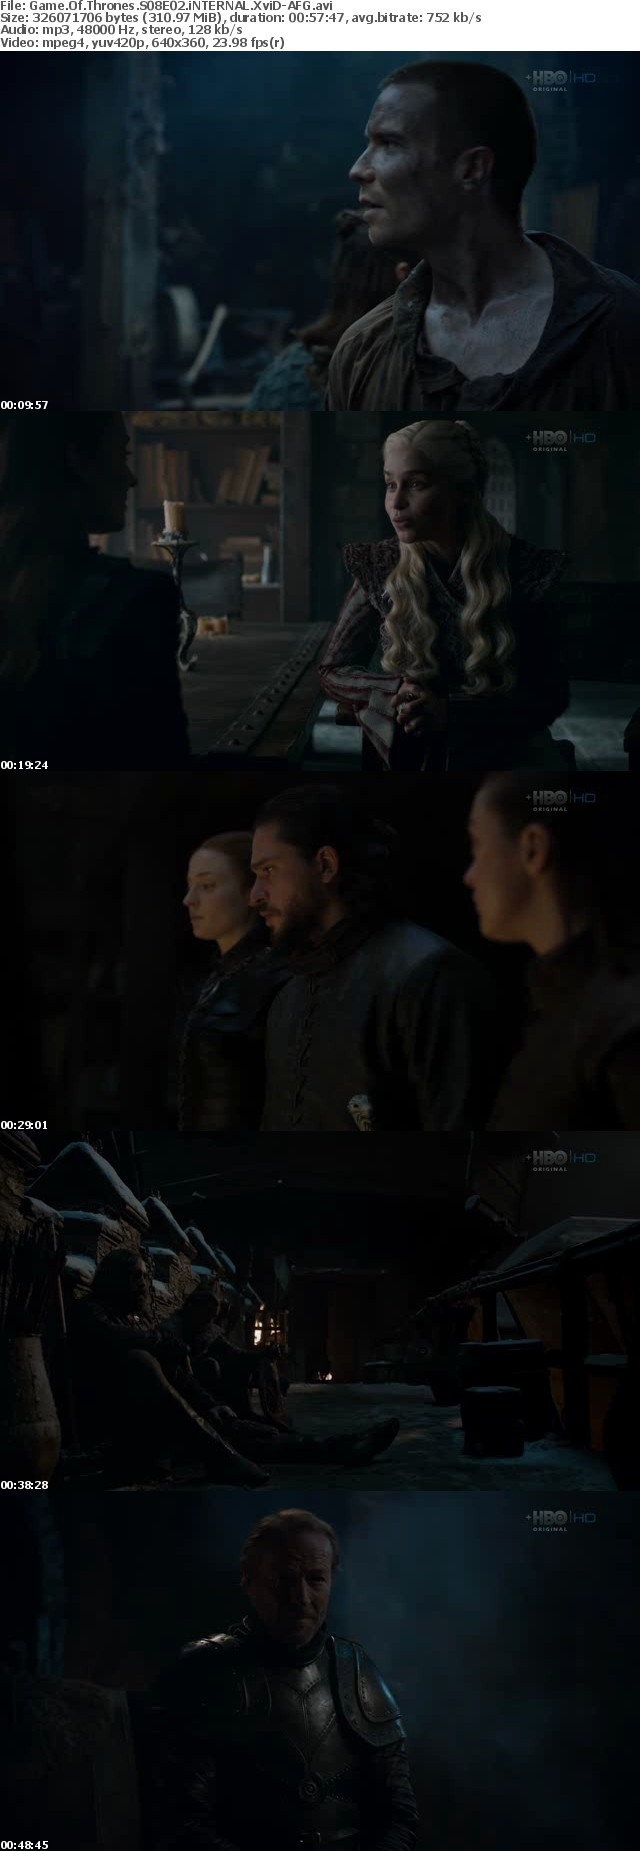 Game Of Thrones S08E02 iNTERNAL XviD-AFG